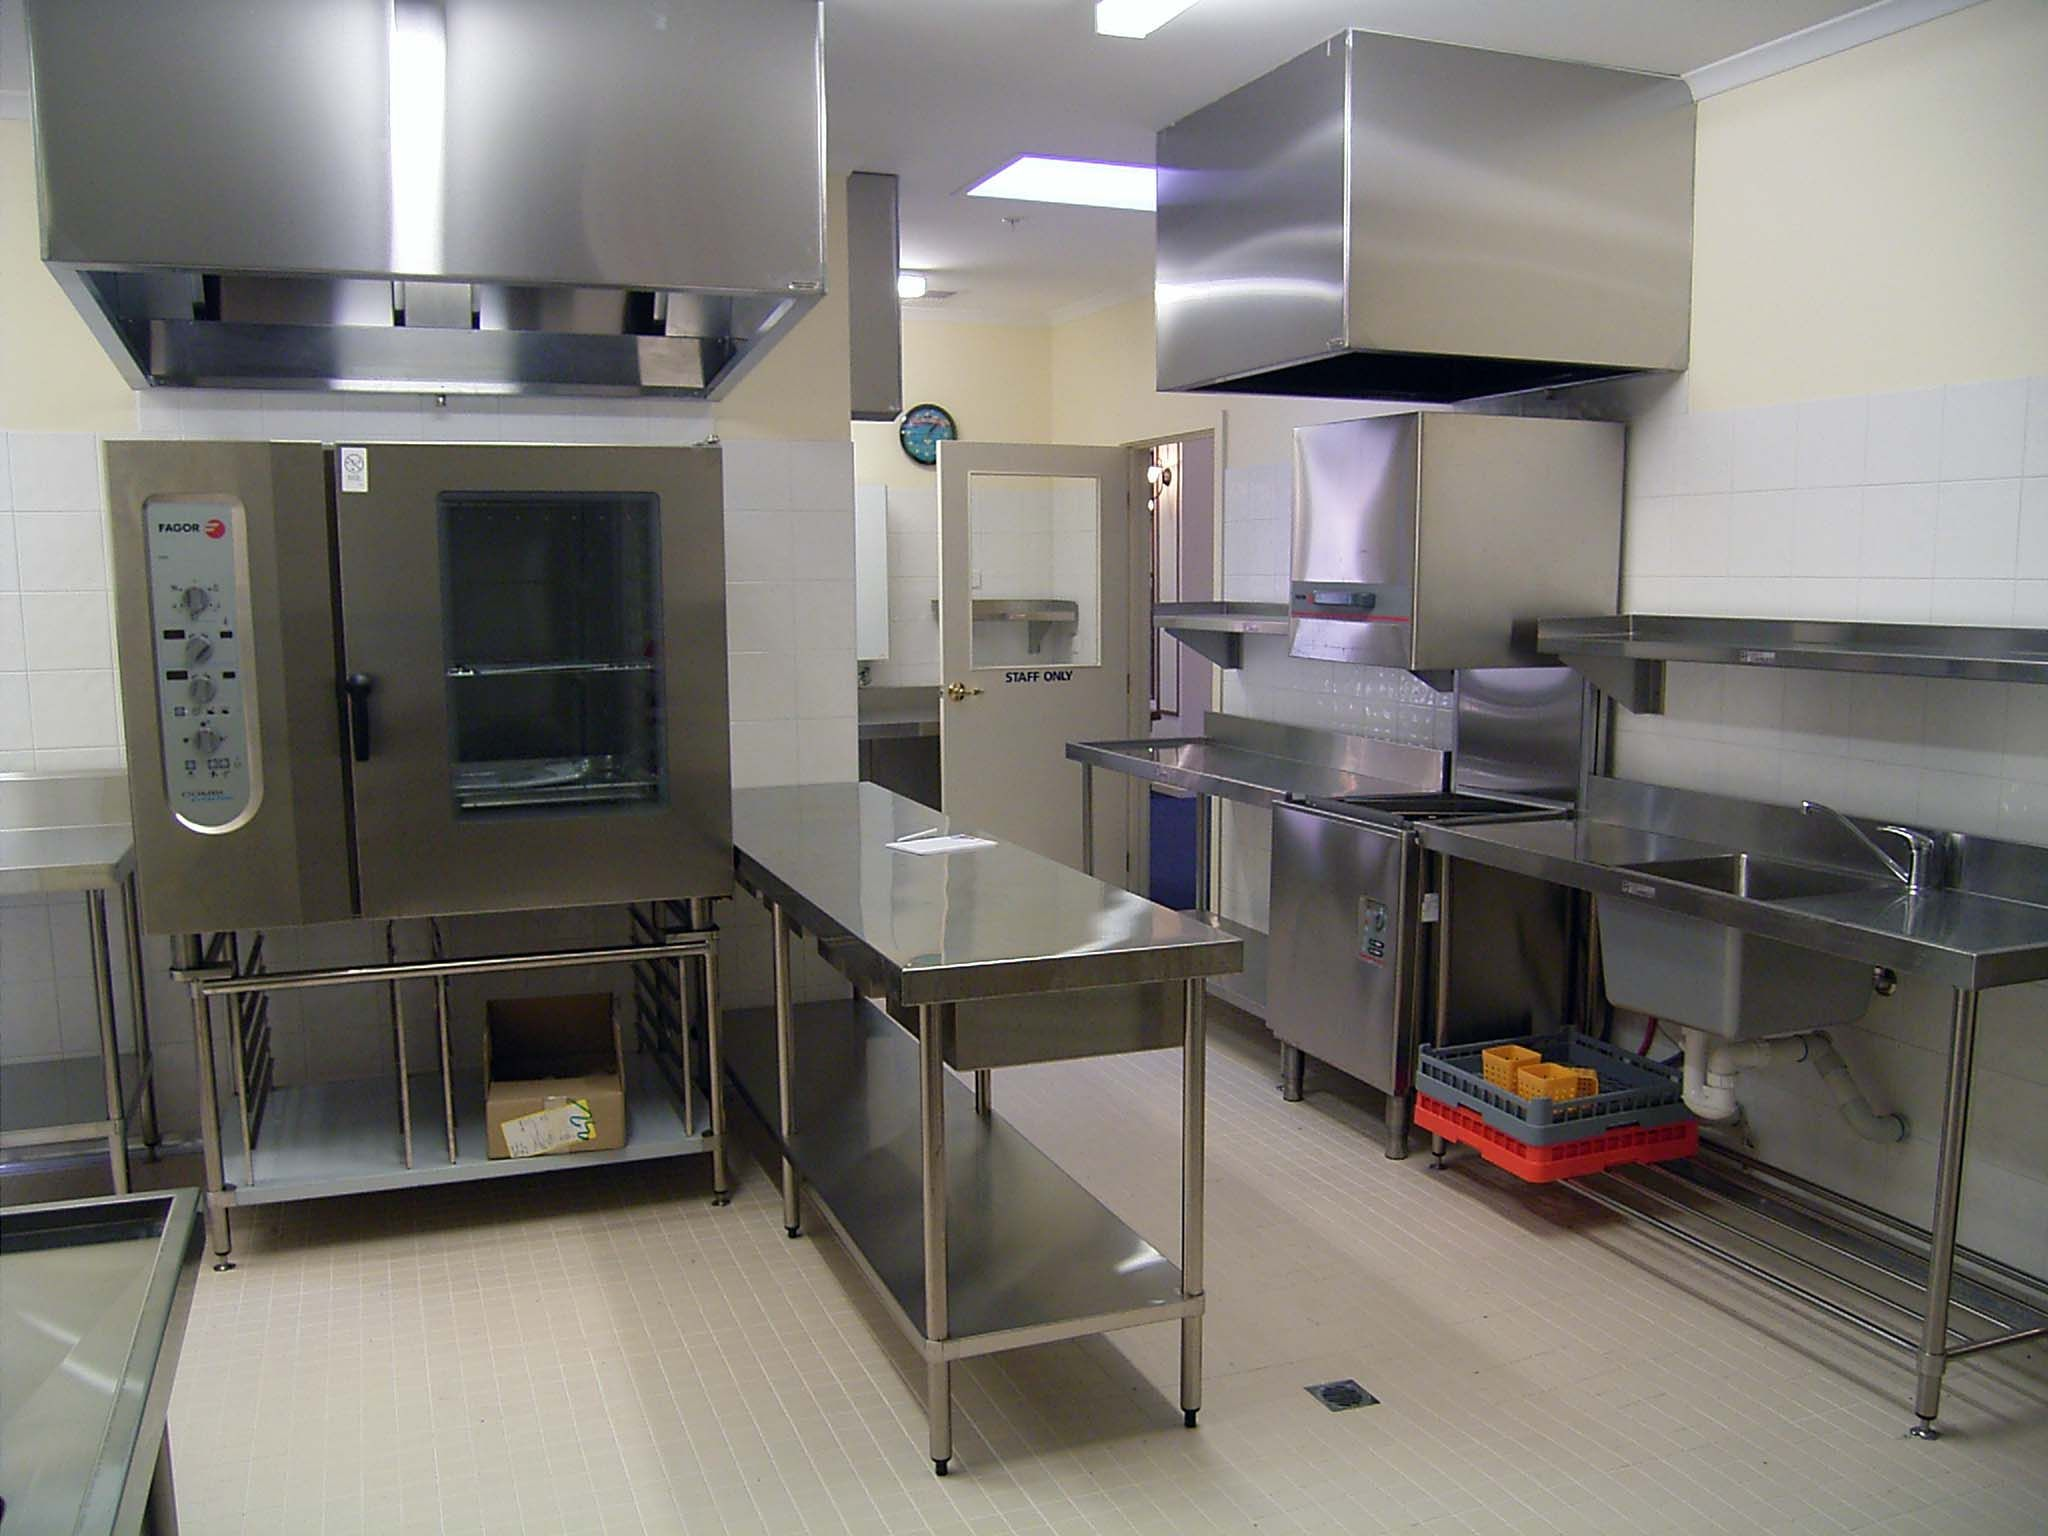 Restaurant Kitchen Equipment Layout about commercial kitchen design source:- google.pk what began